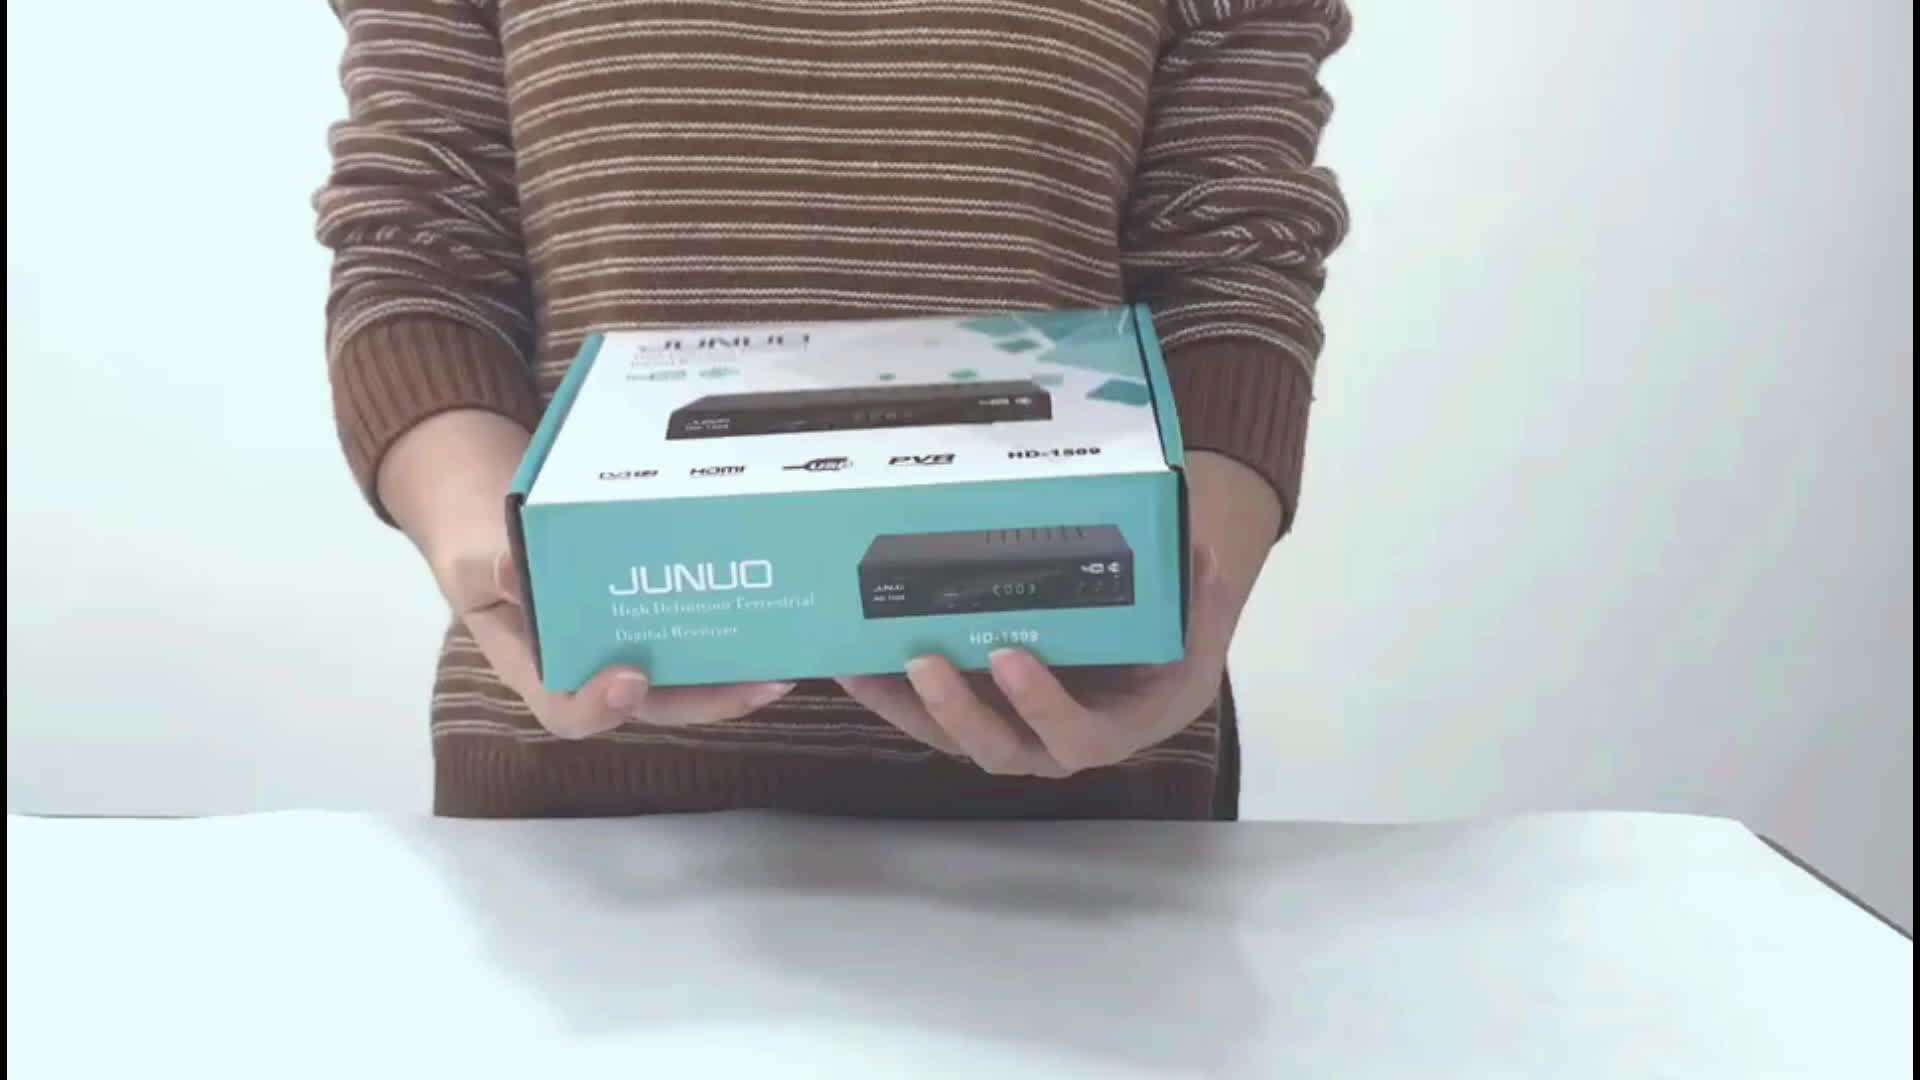 Hot selling junuo tv box  digital dvb t2 set top box for European market